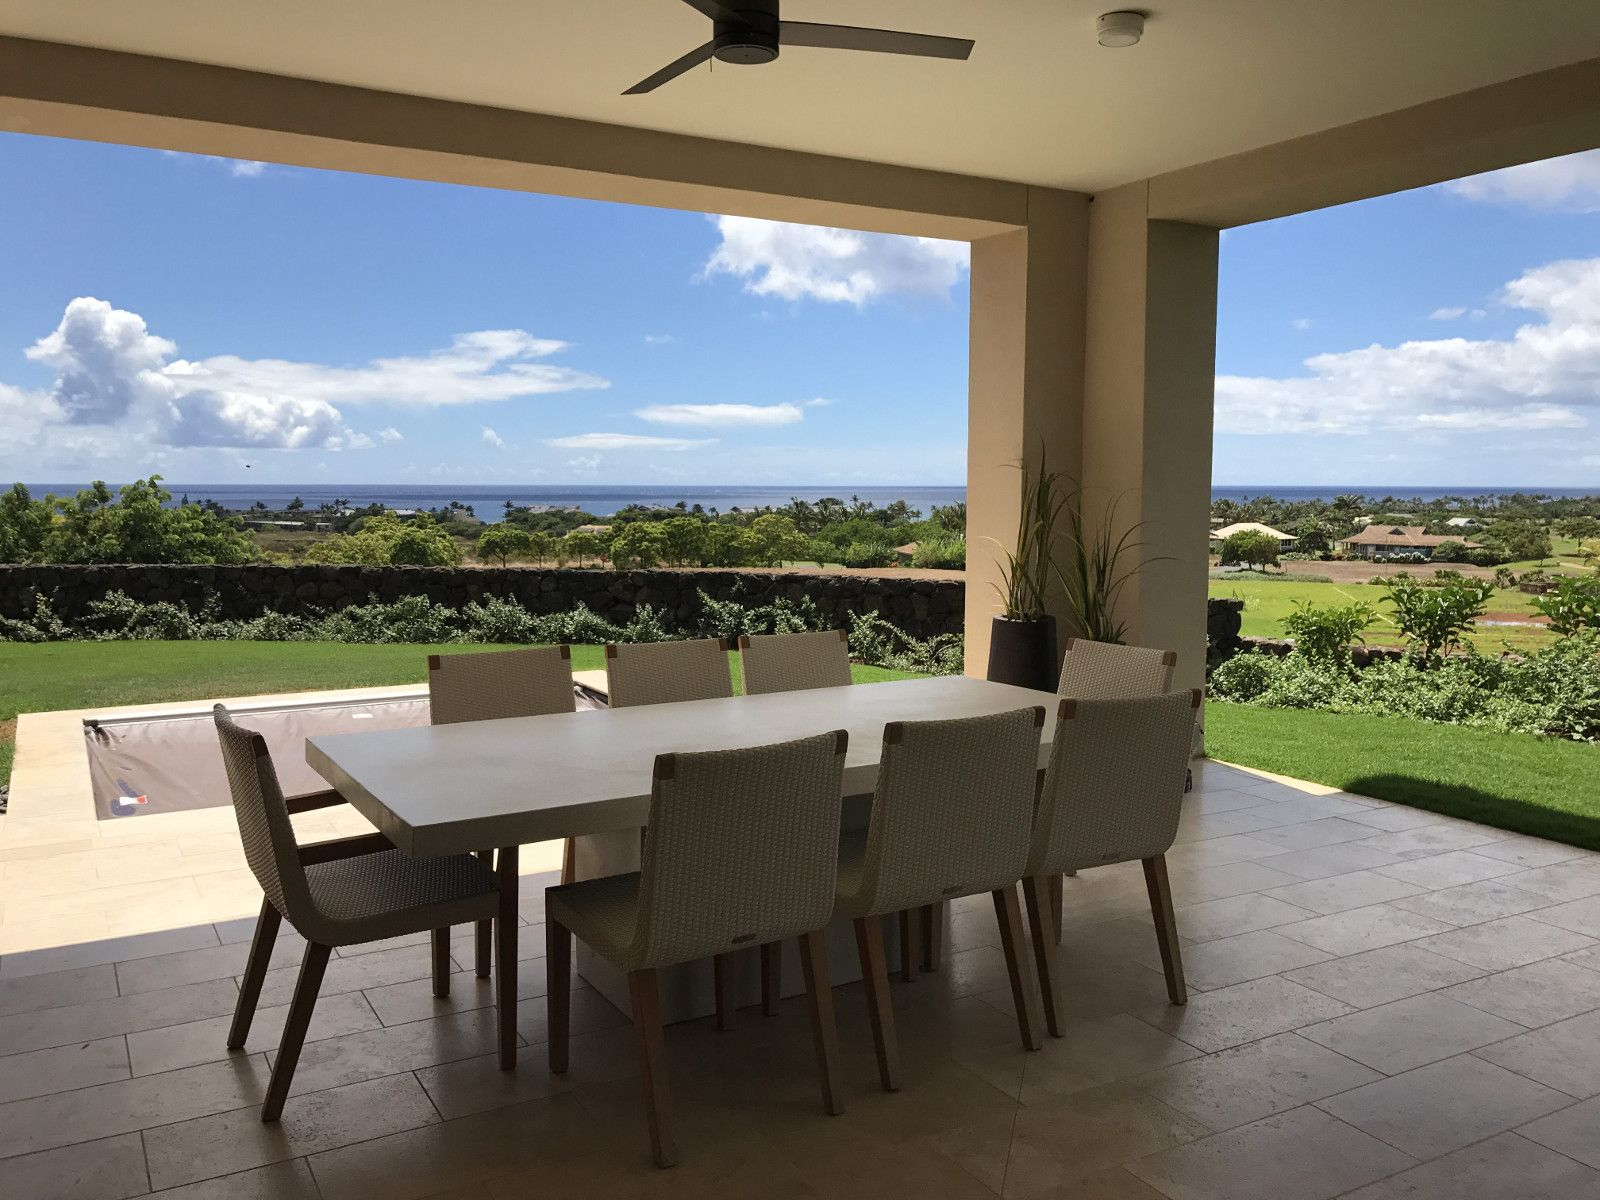 Kauai new construction opportunities on the south shore for Kauai life real estate